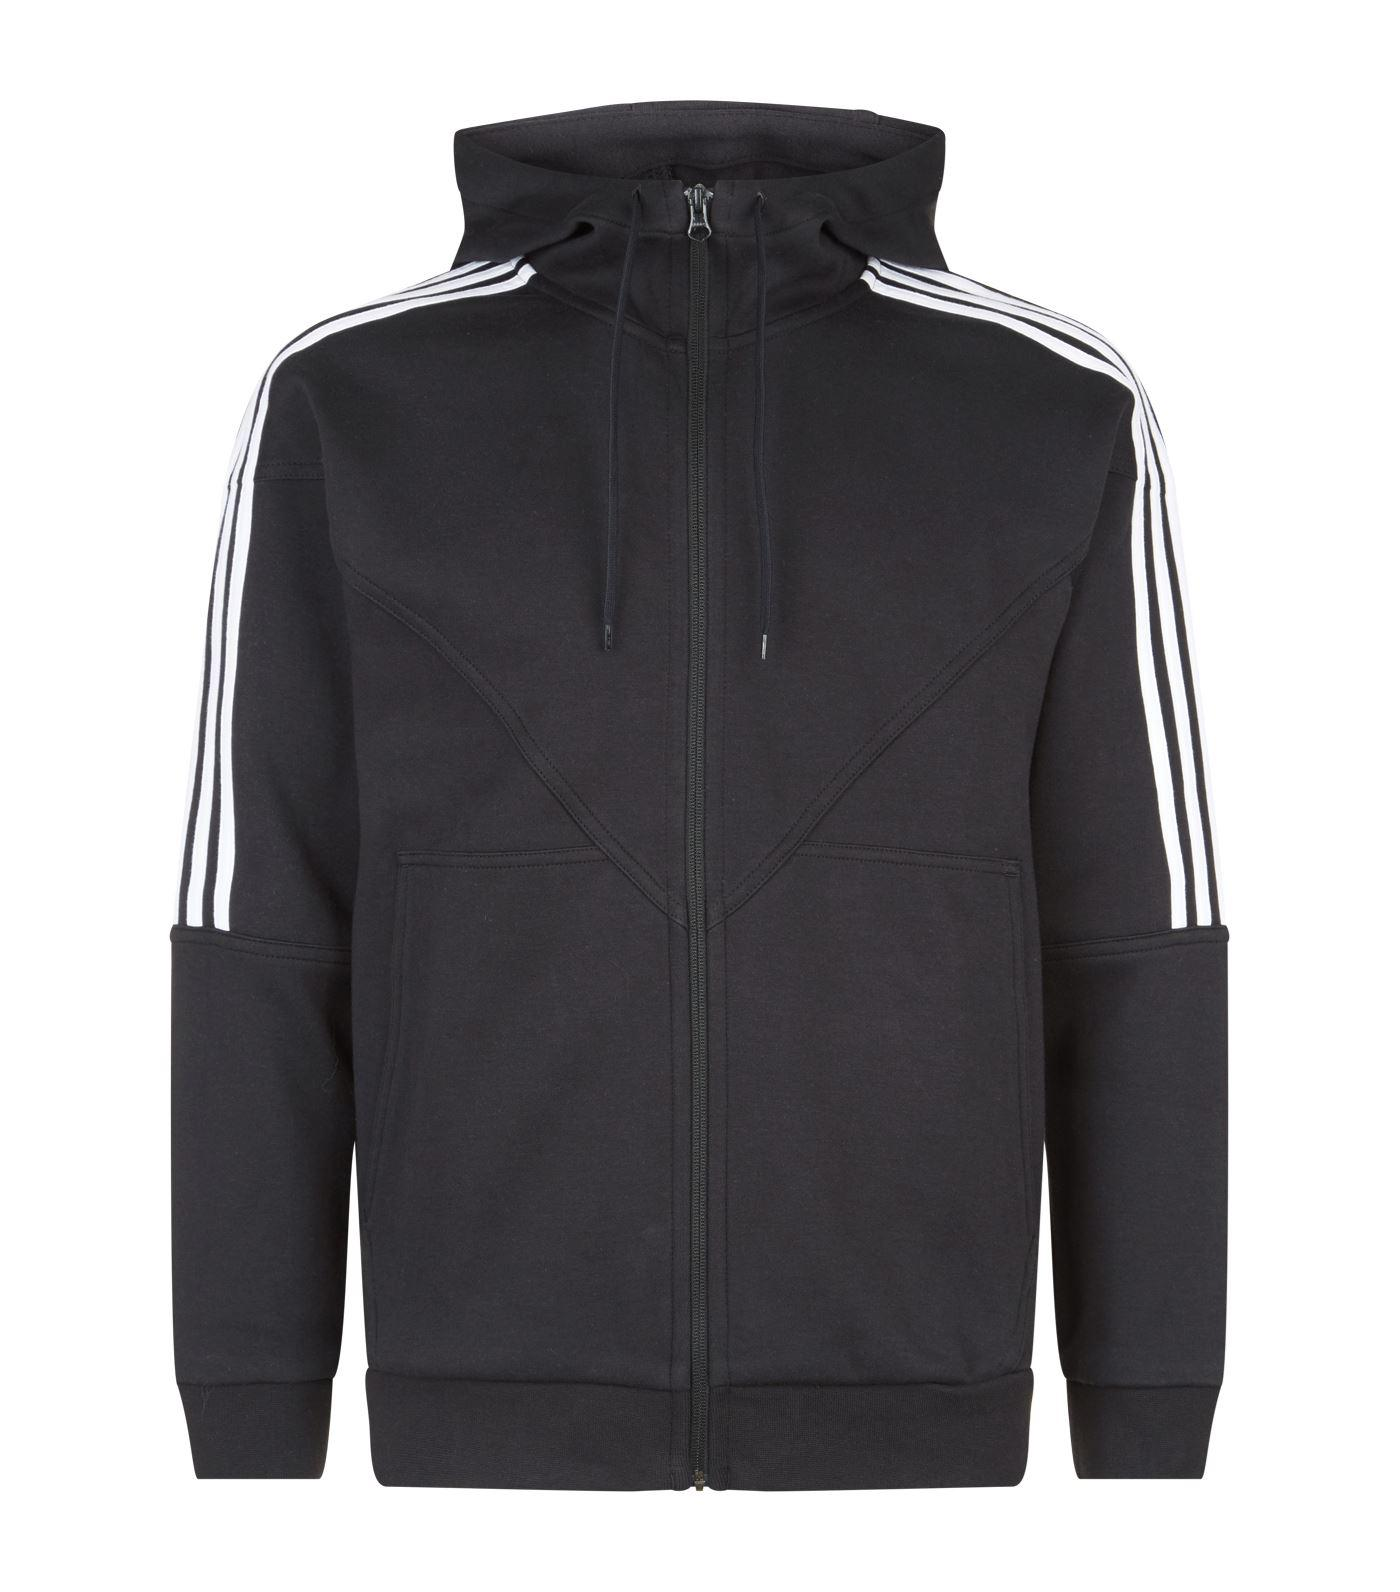 4adede09f Adidas Originals Nmd Hoodie in Black for Men - Lyst